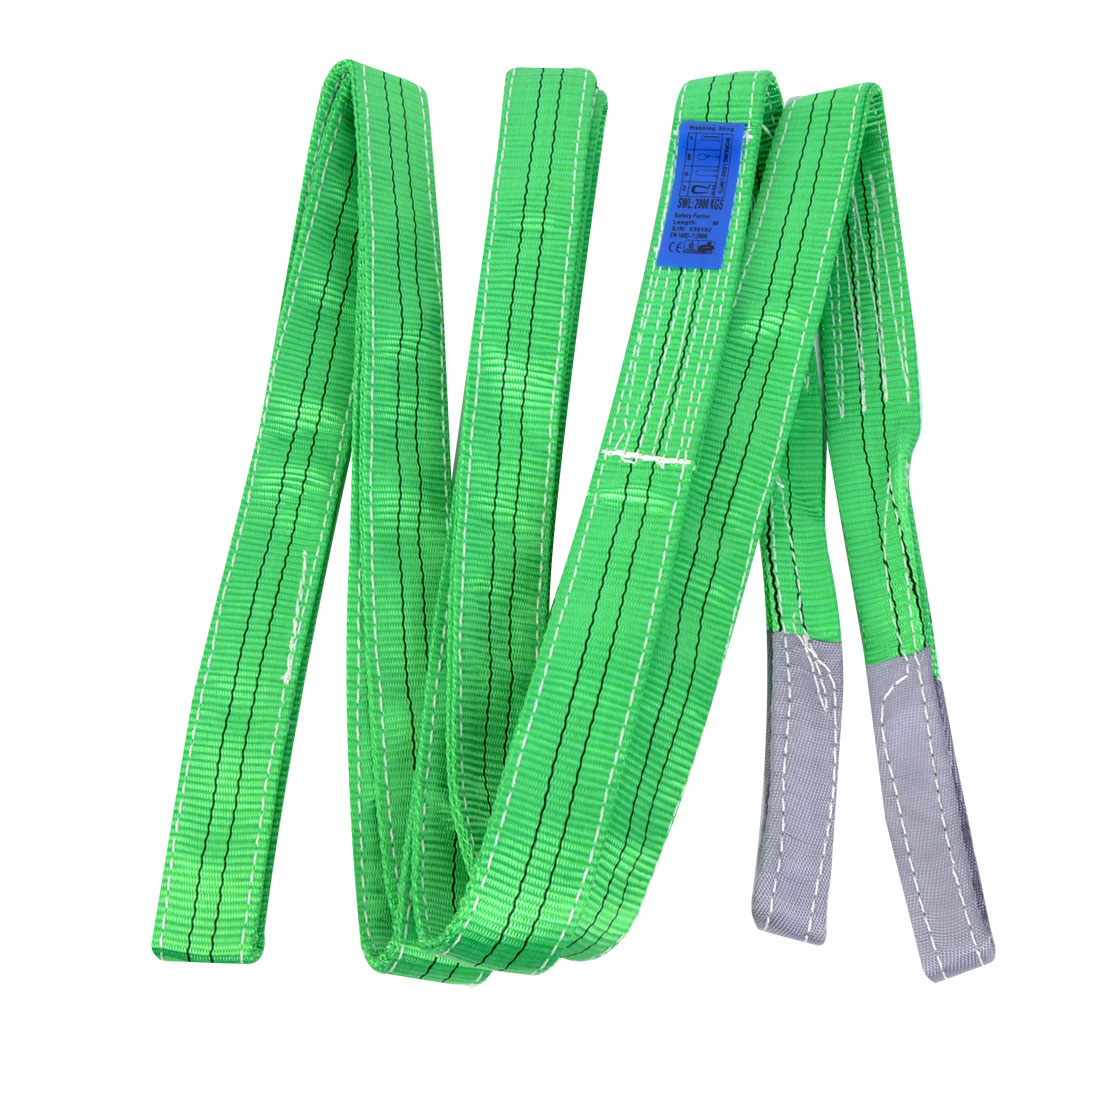 4M Length 5cm Width 2 Ton Green Polyster Webbing Lifting Tow Strap